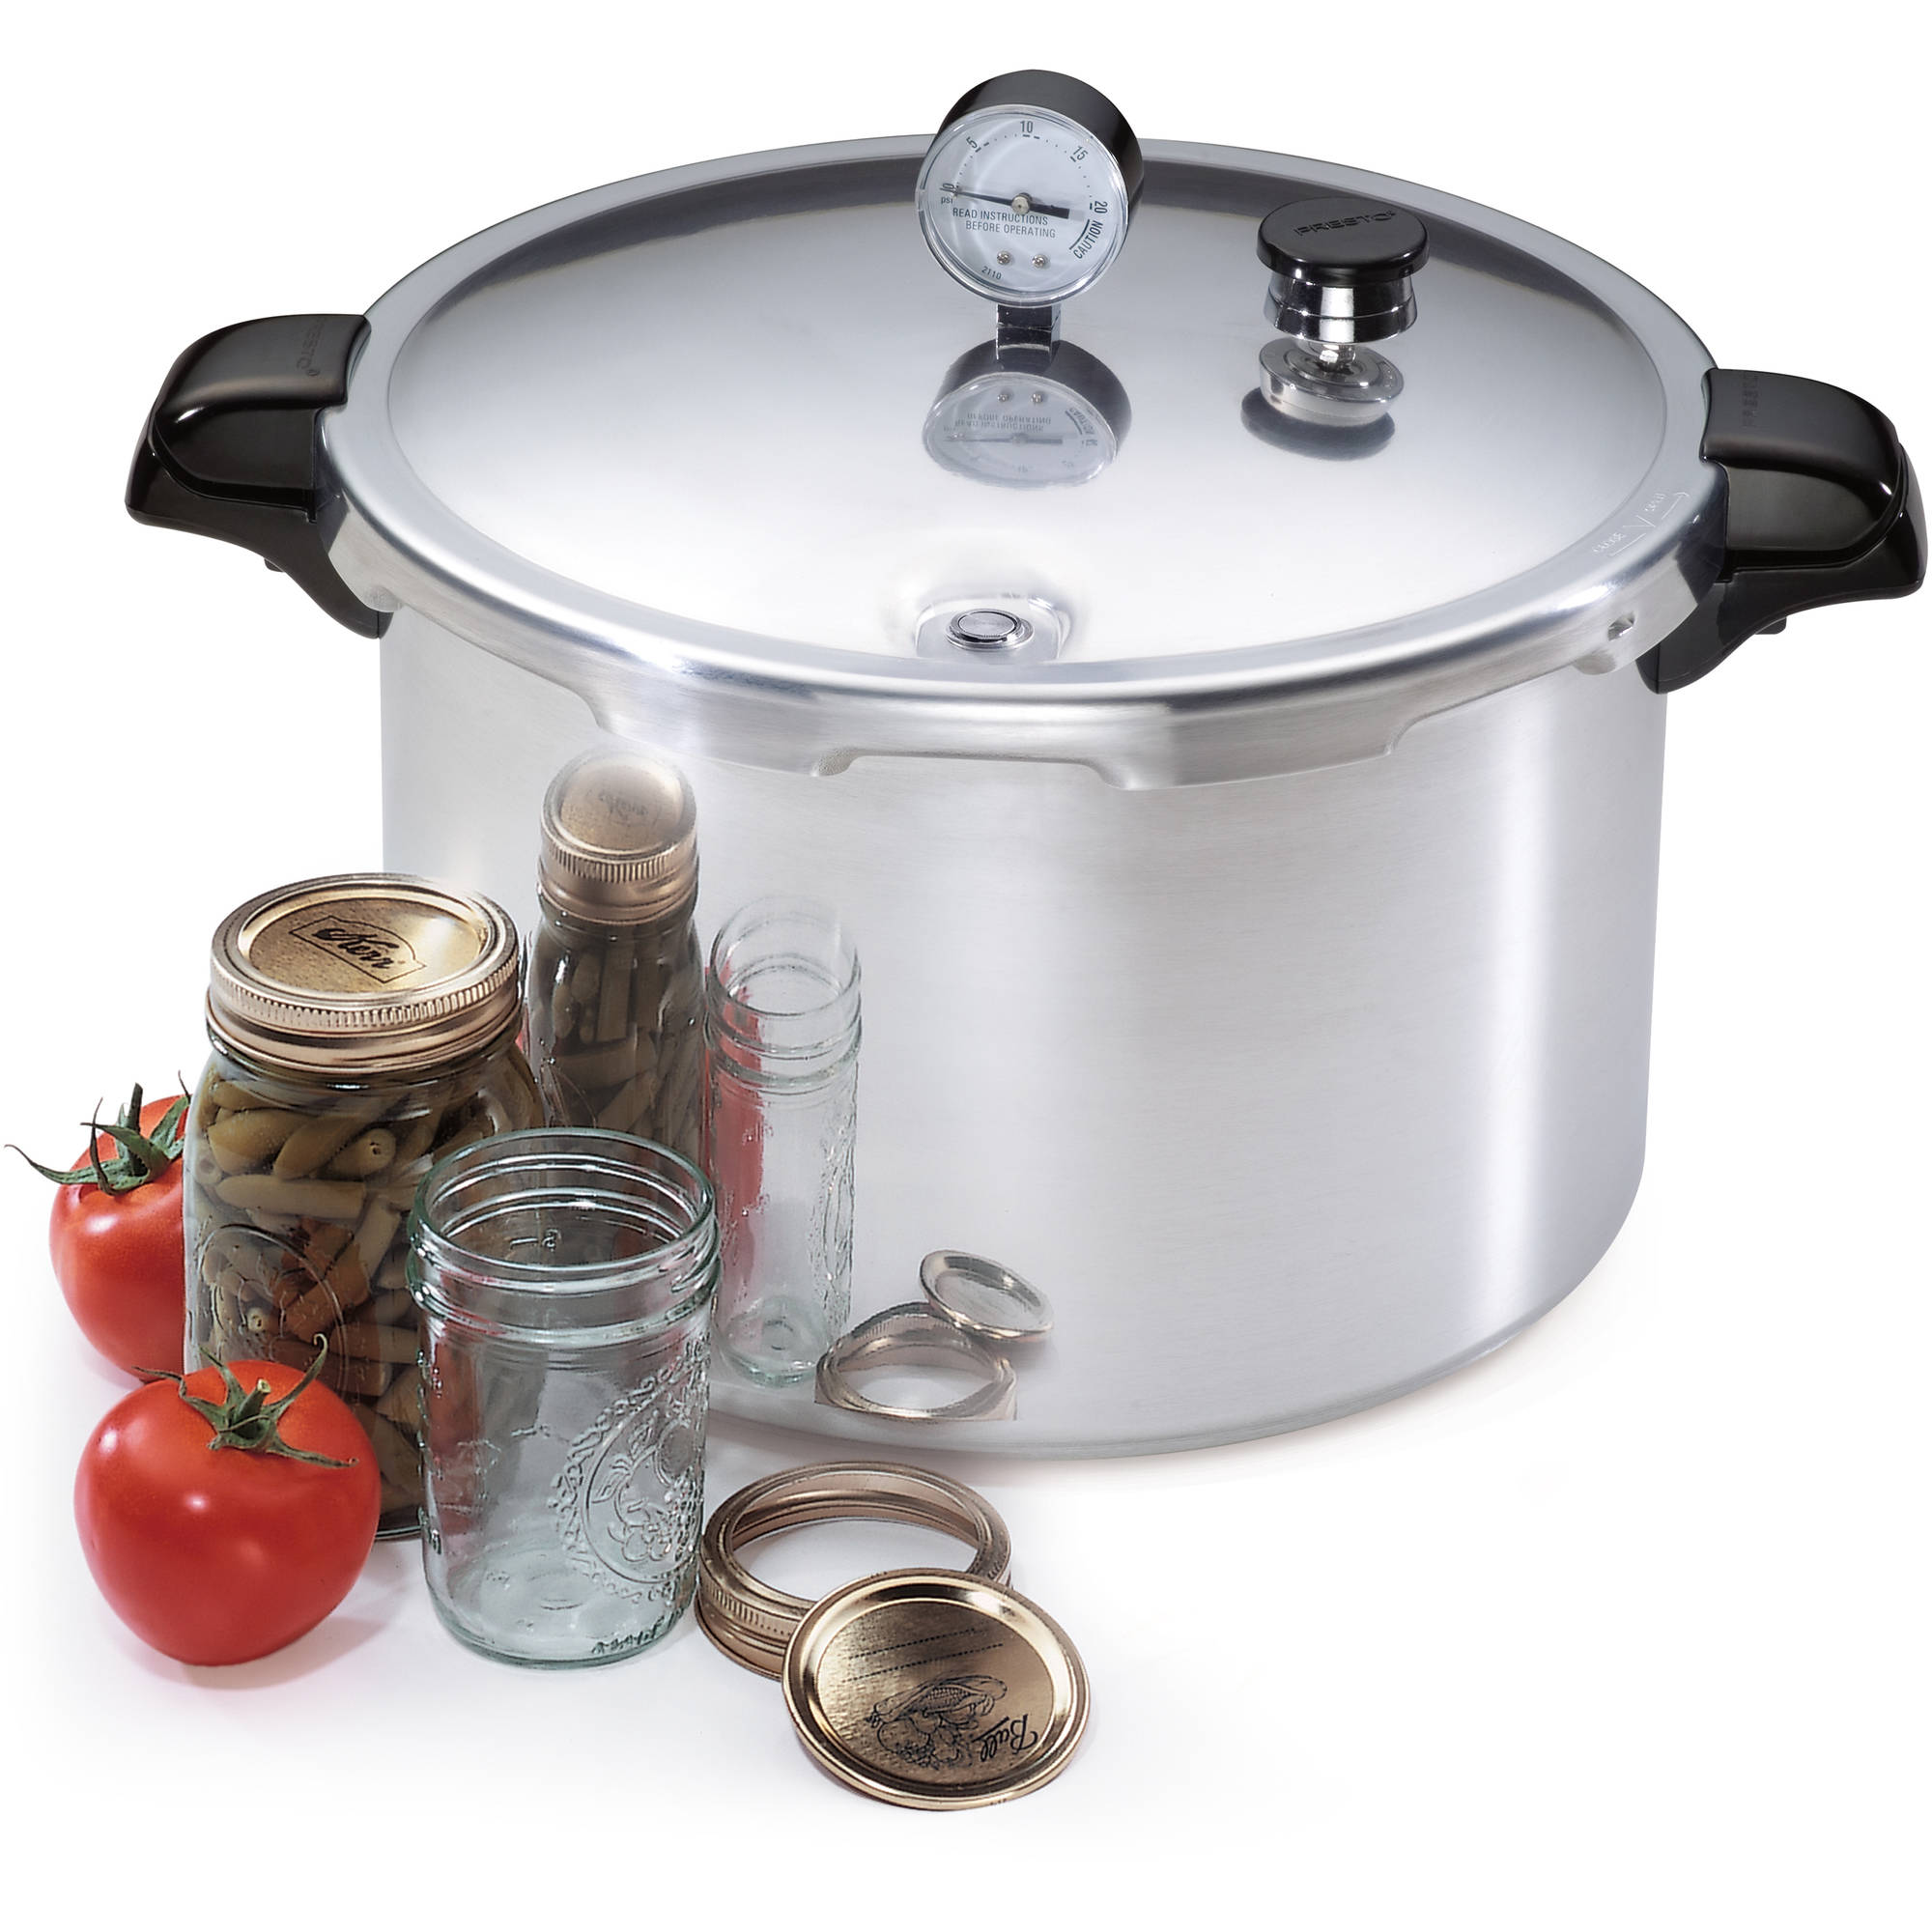 Presto 16-Quart Pressure Canner and Cooker 01755